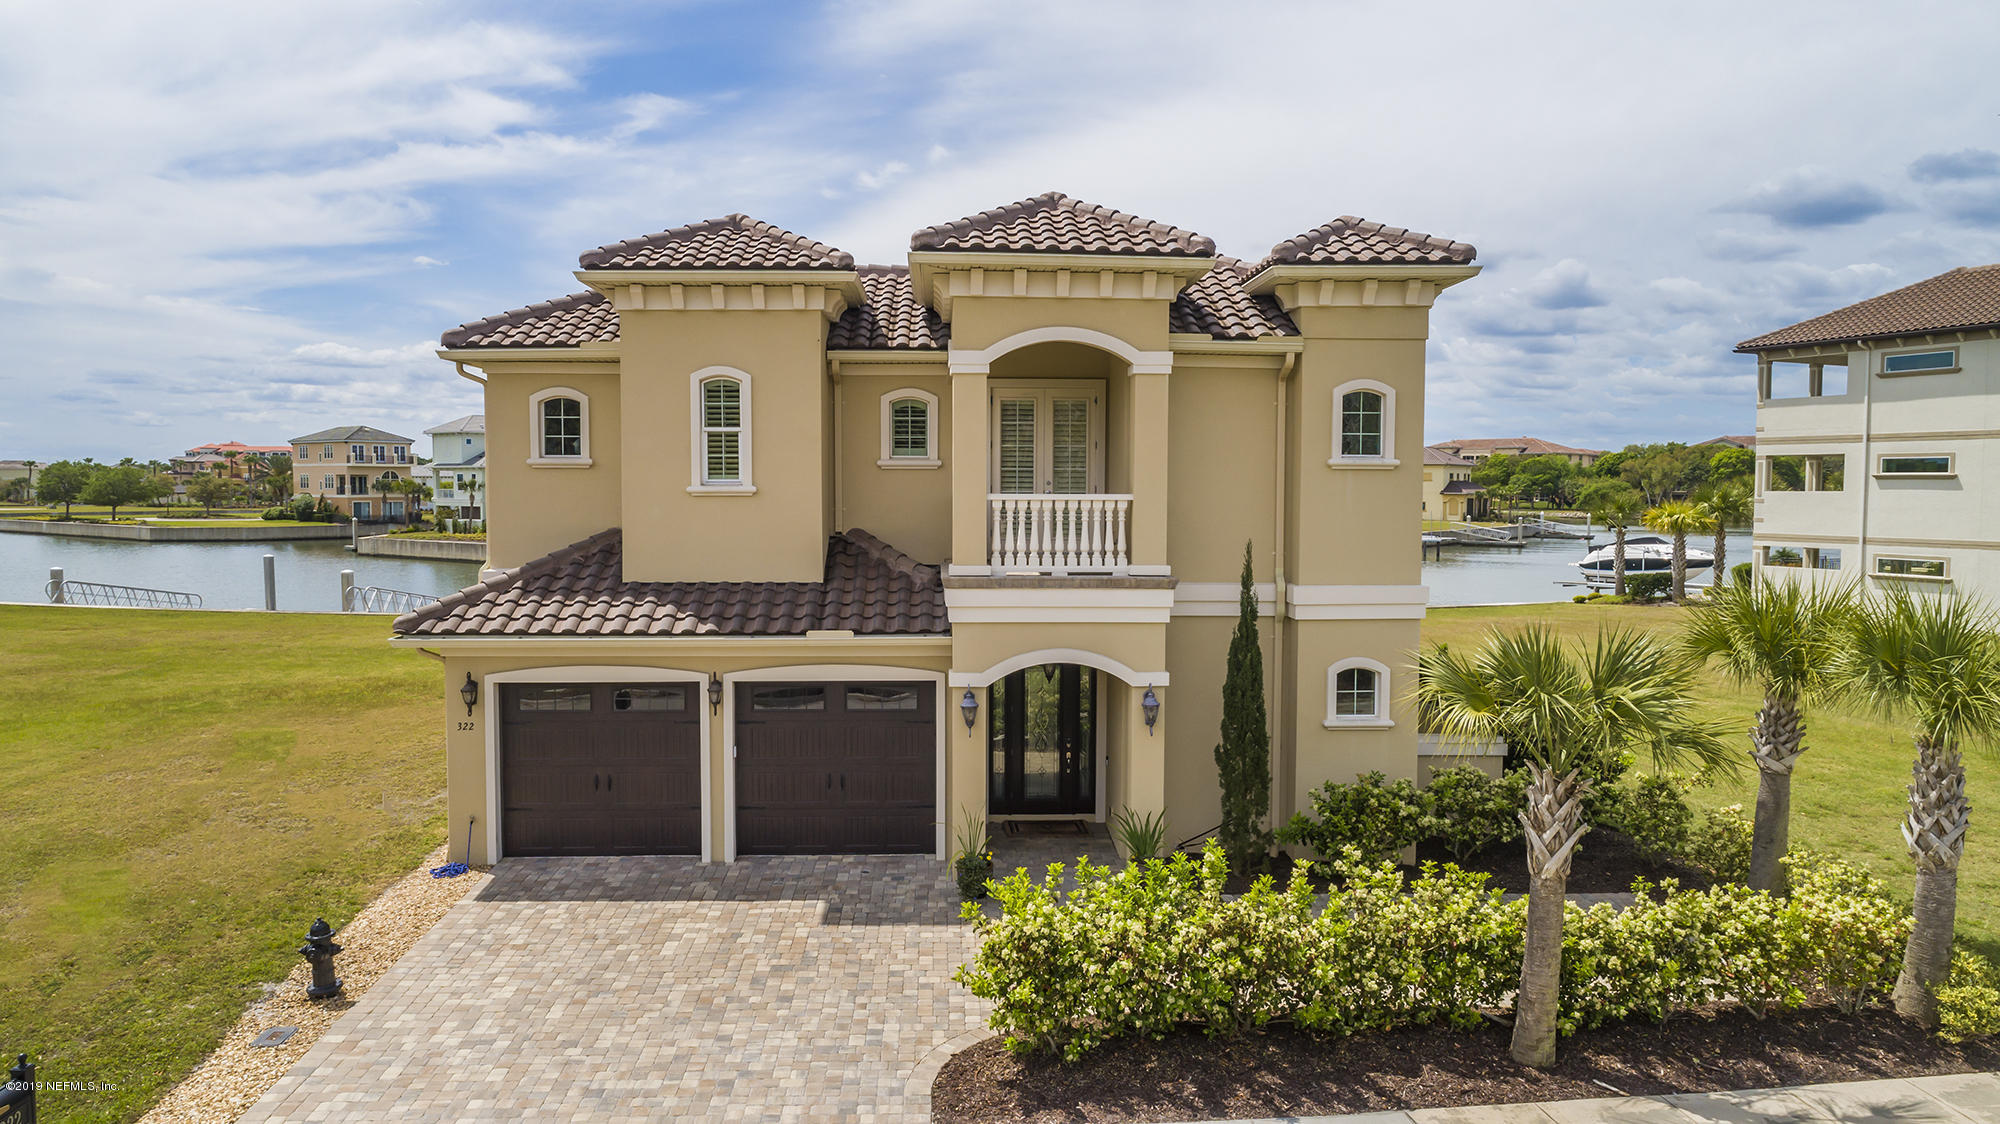 Harbor Village Marina, Palm Coast, Florida Homes For Sale By